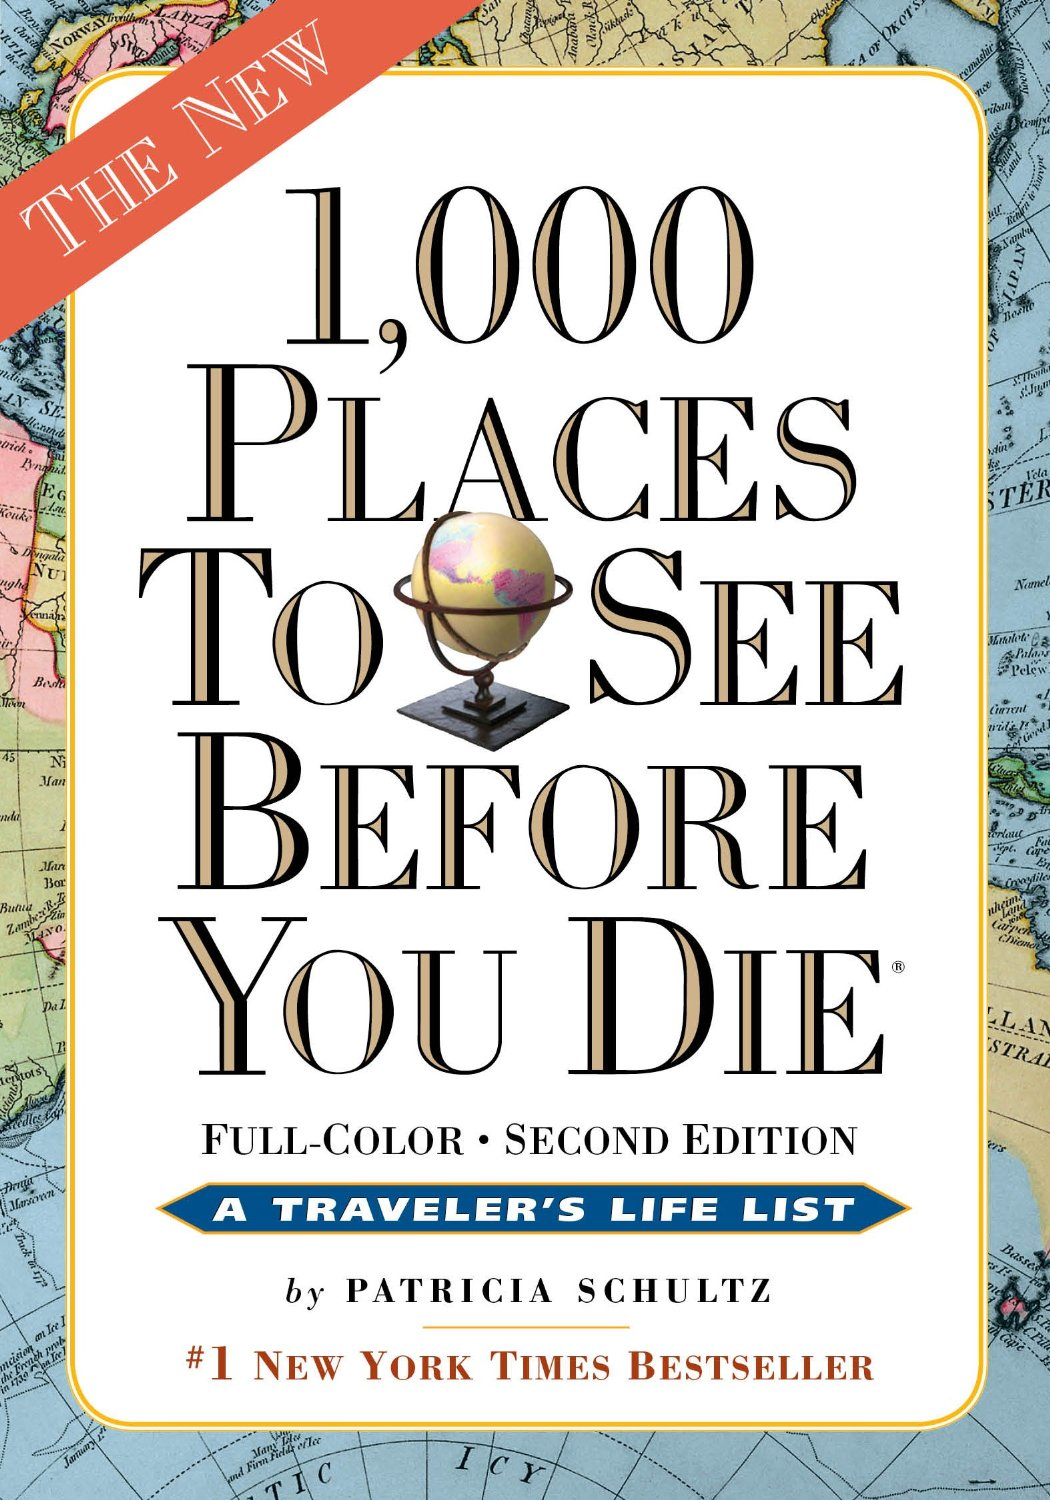 1000 places to eat before you die book